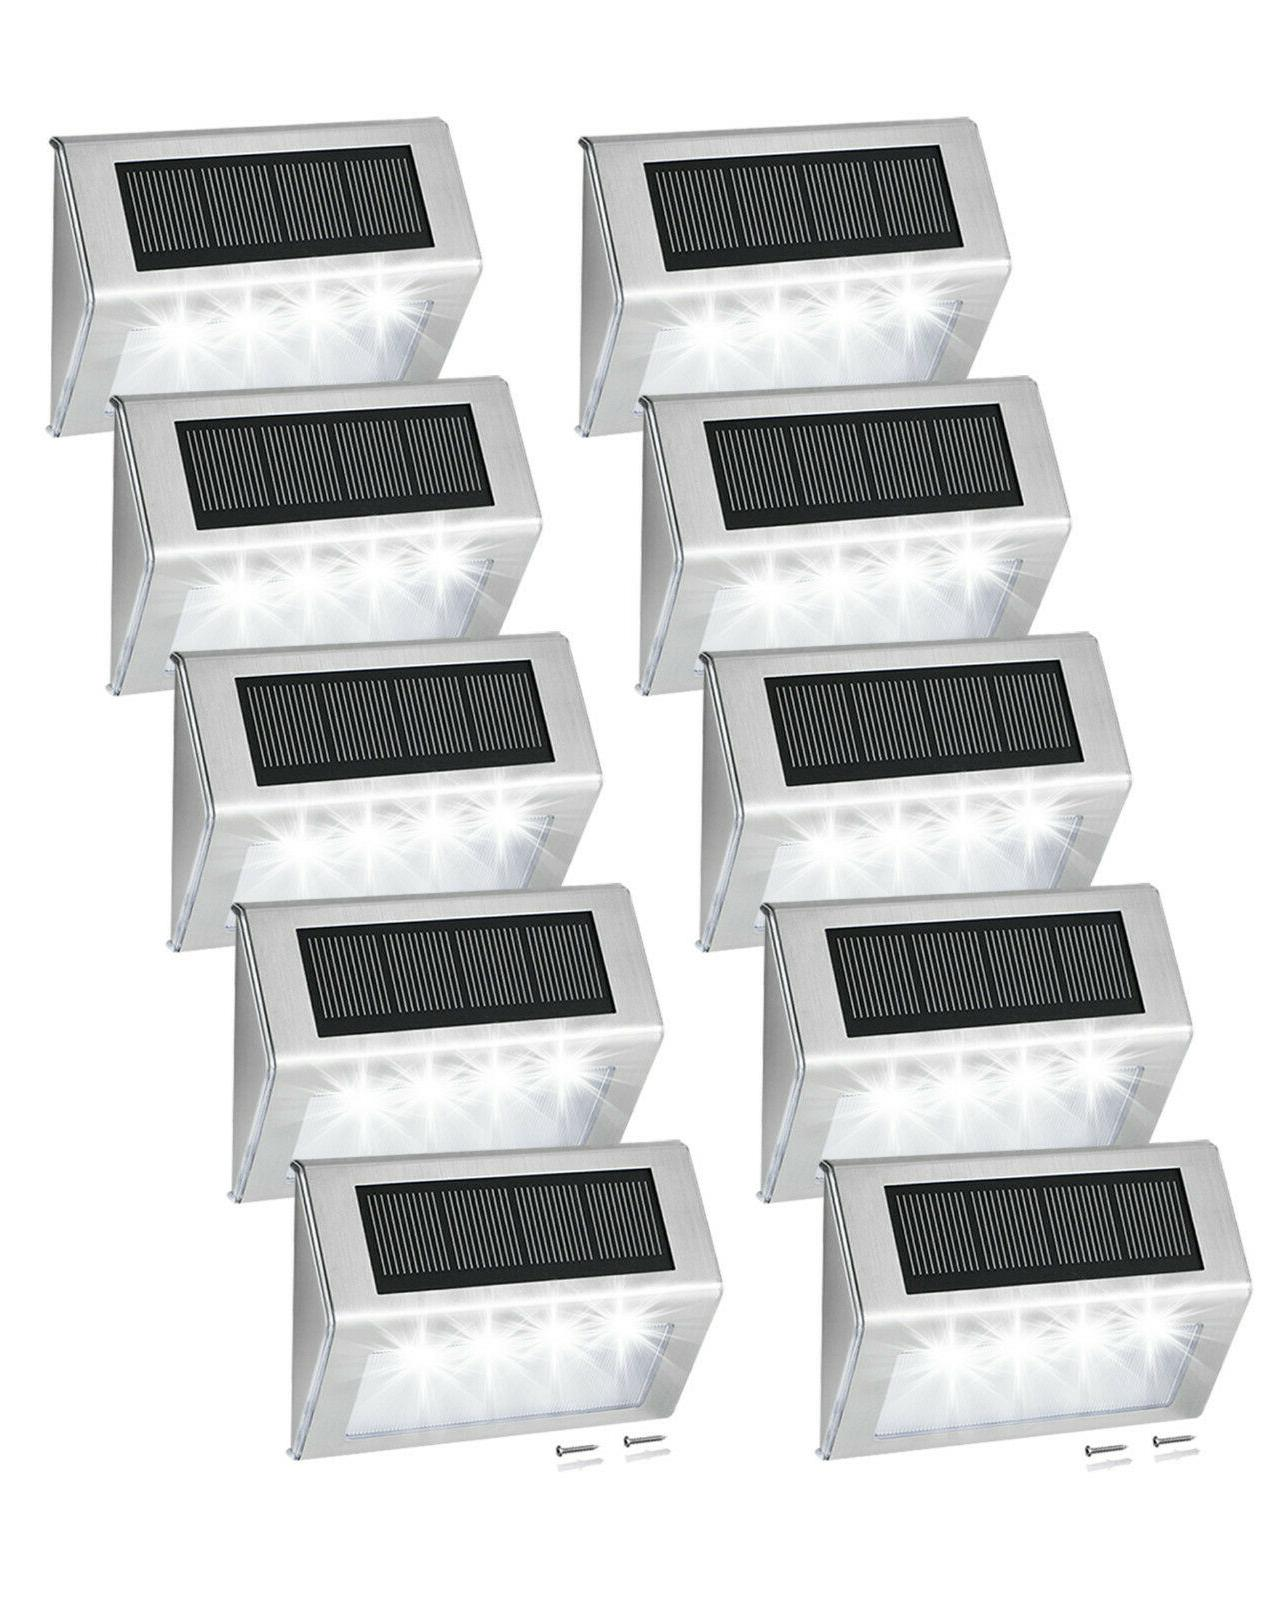 4 LED Powered Step Fence Post Lights for Outdoor Stair